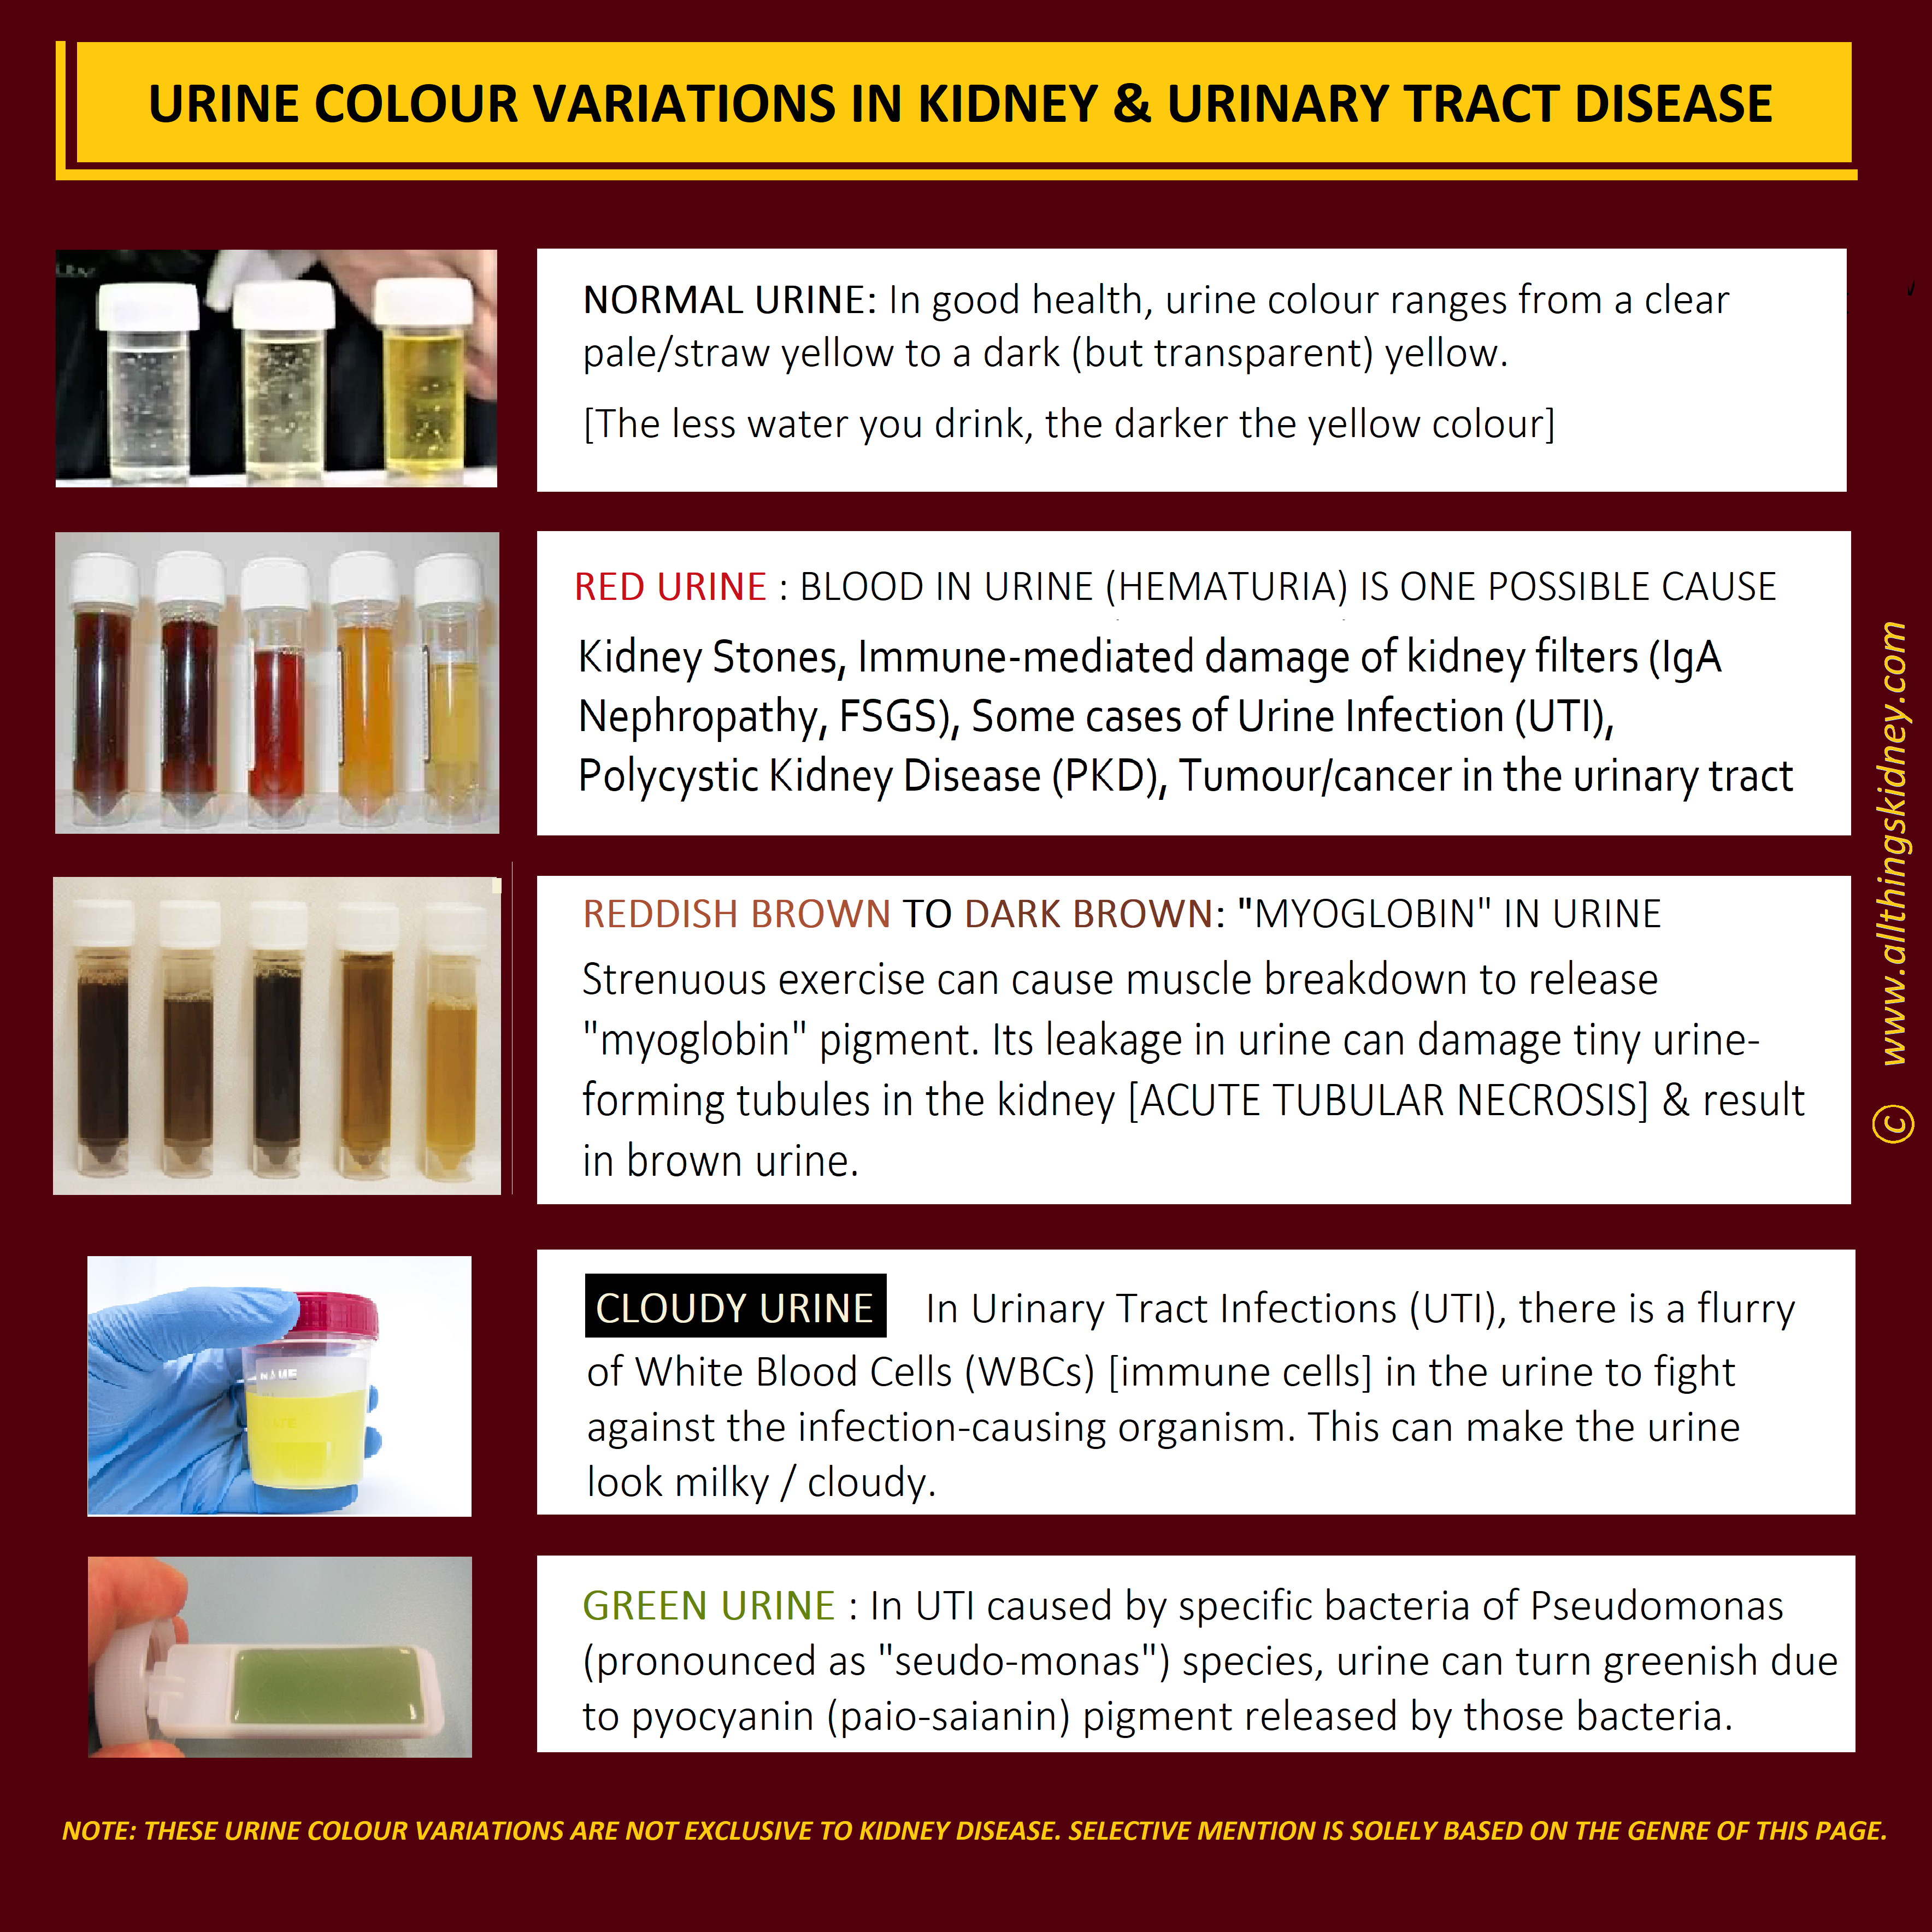 The Post Lists The Conditions Pertaining To Our Kidneys And The Urinary Tract Downstream That Can Potentially Modify Our Urinary Tract Doctor Photo And Video